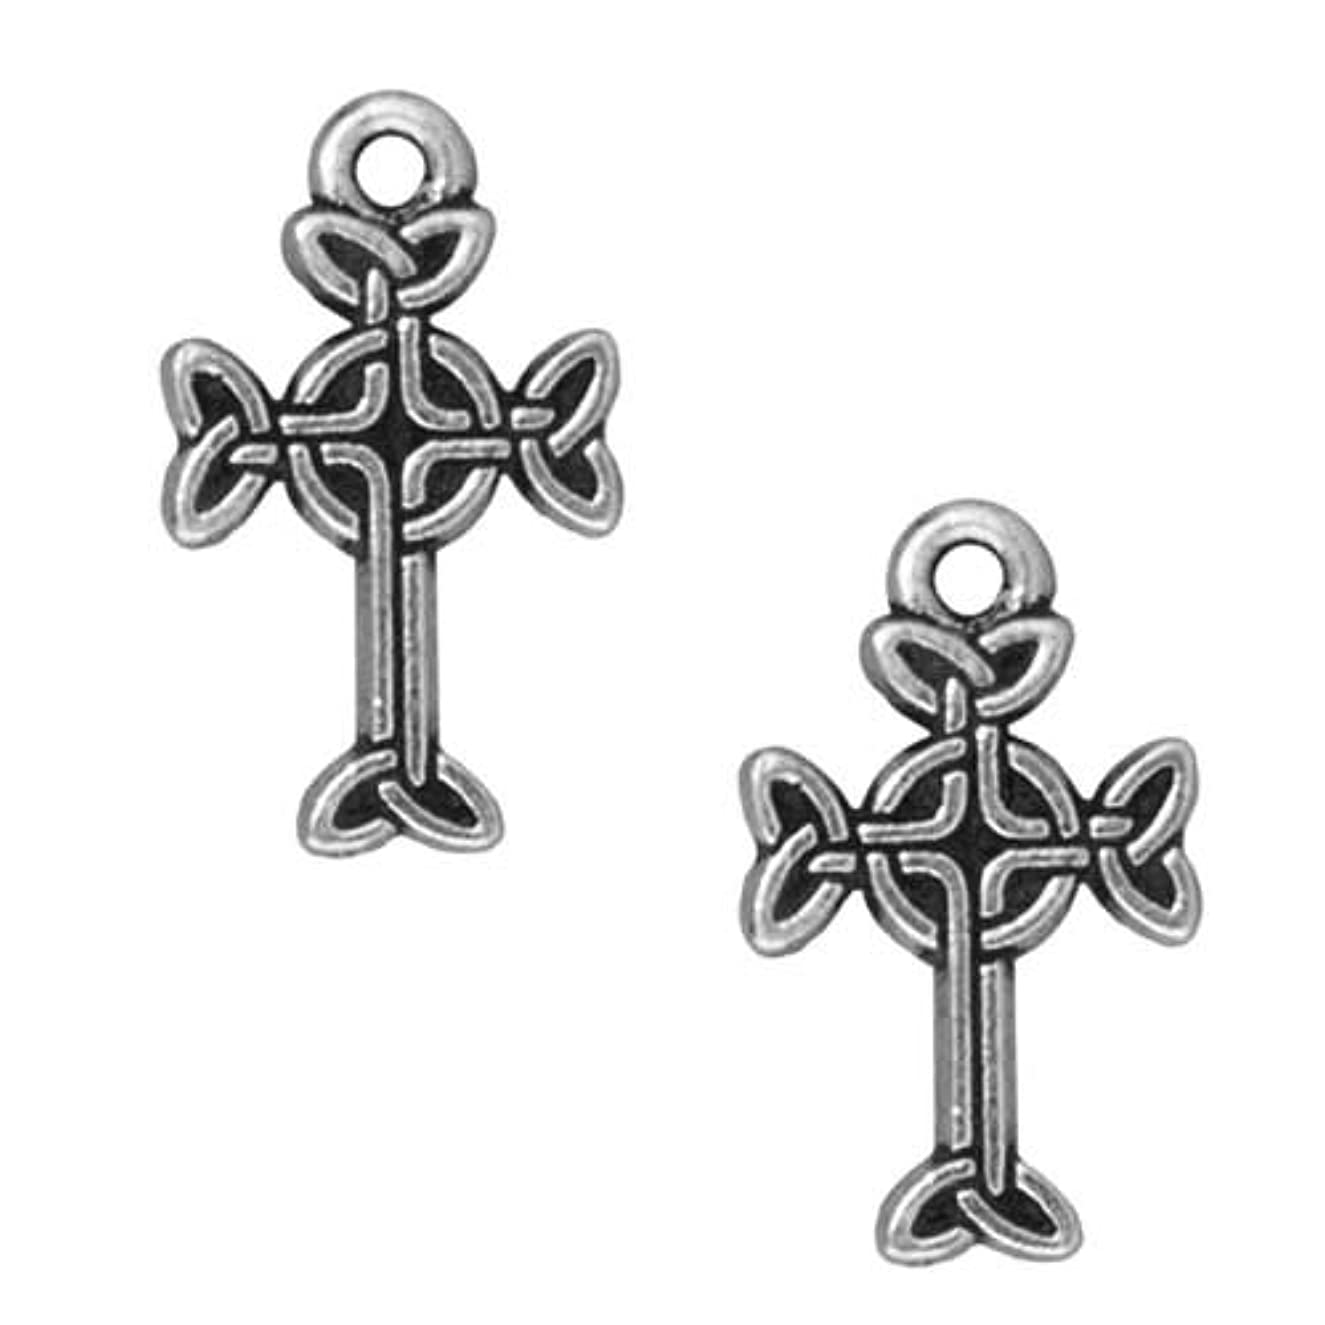 TierraCast Celtic Cross Charm, 18.5mm, Antiqued Fine Silver Plated Pewter, 4-Pack